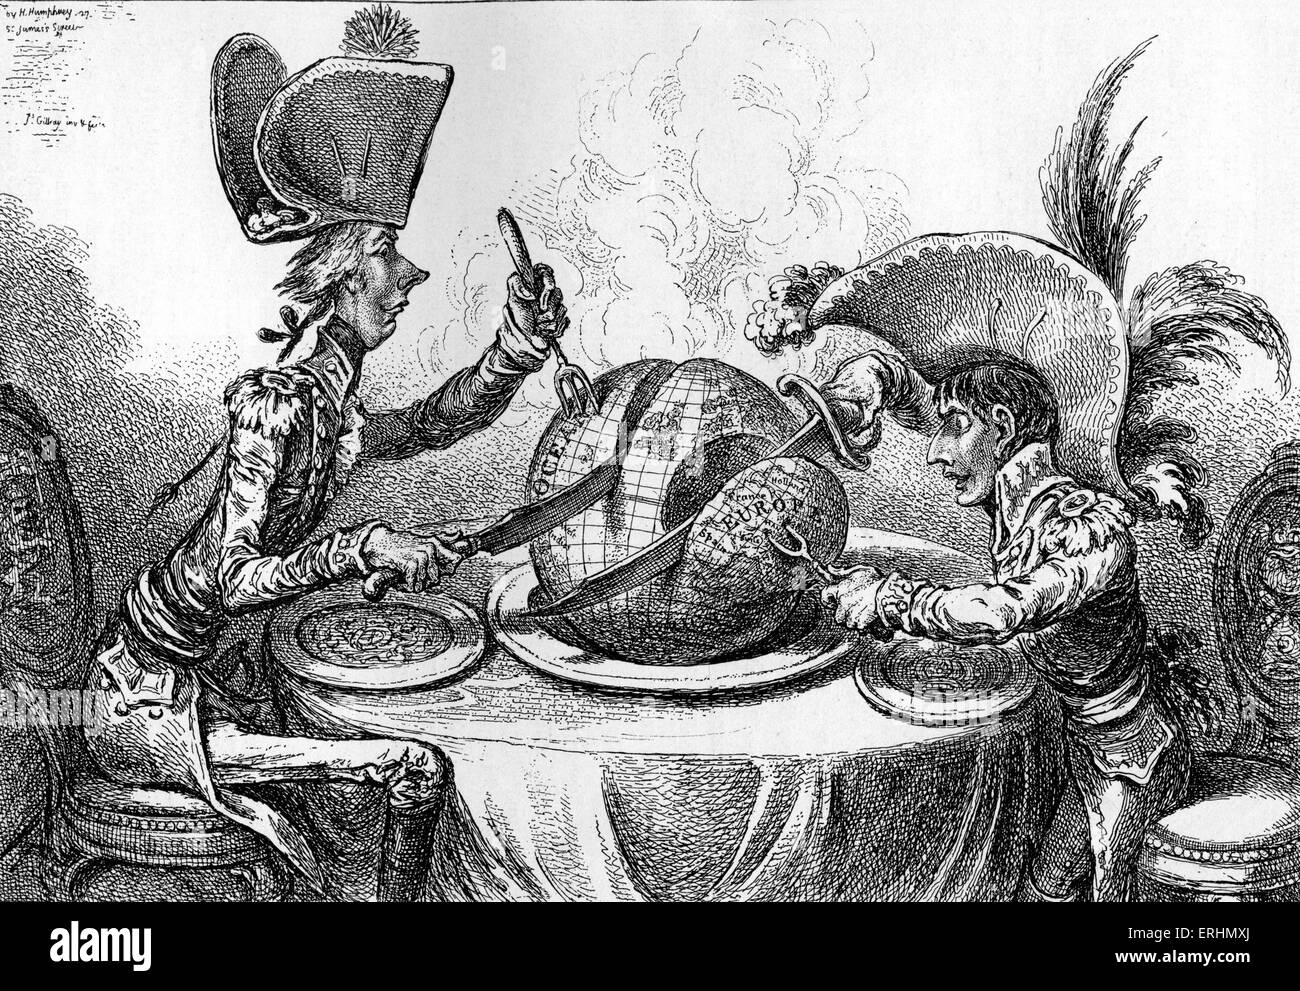 'The Plum Pudding in Danger' (or 'State Epicures Taking un Petit Souper') - English caricature showing - Stock Image